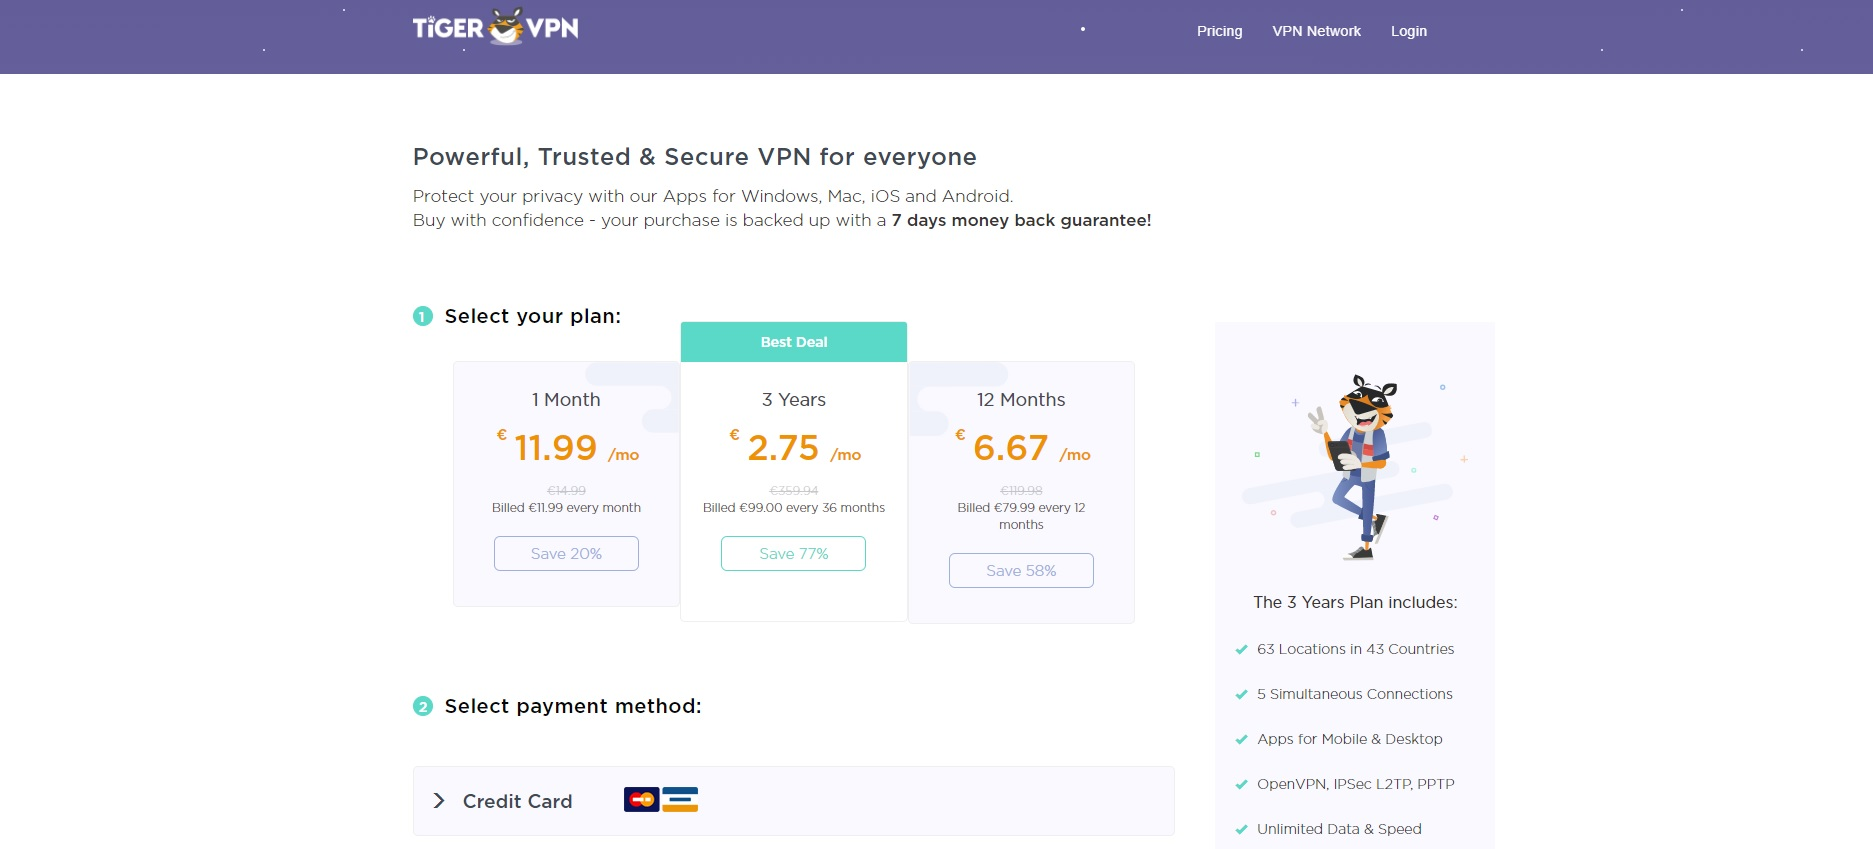 Tiger Vpn - A good VPN with an innovative reward program